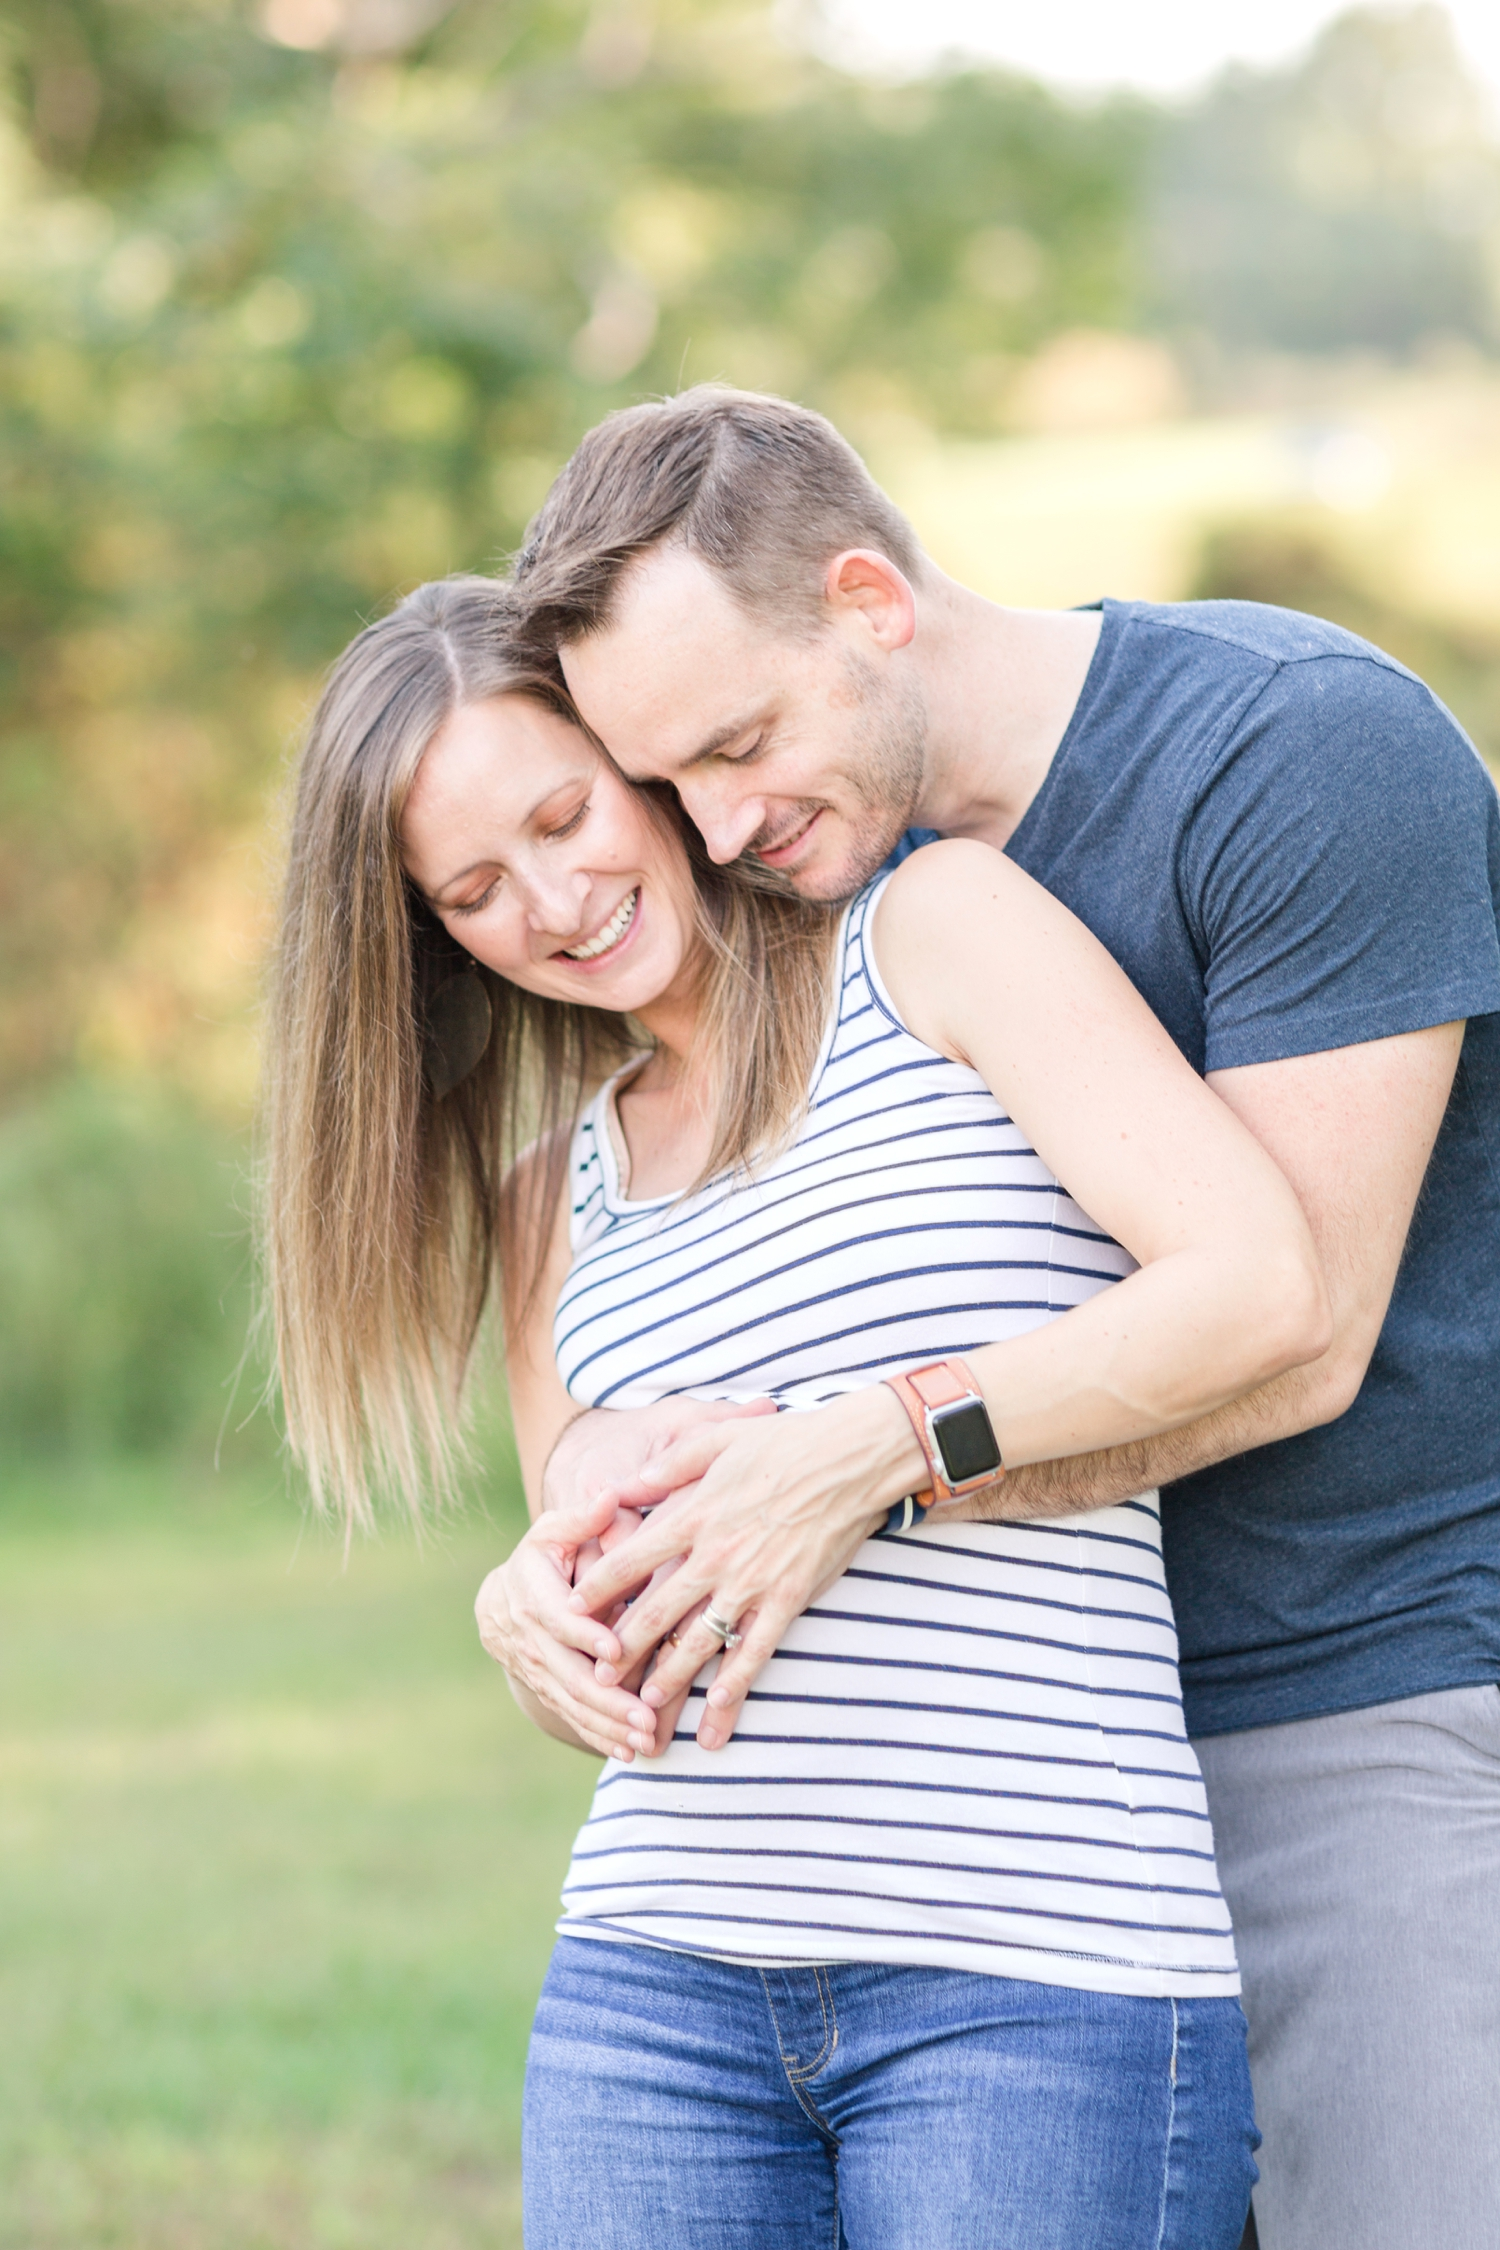 Everhart Maternity-76_Centennial-Park-Maryland-family-maternity-photographer-anna-grace-photography-photo.jpg